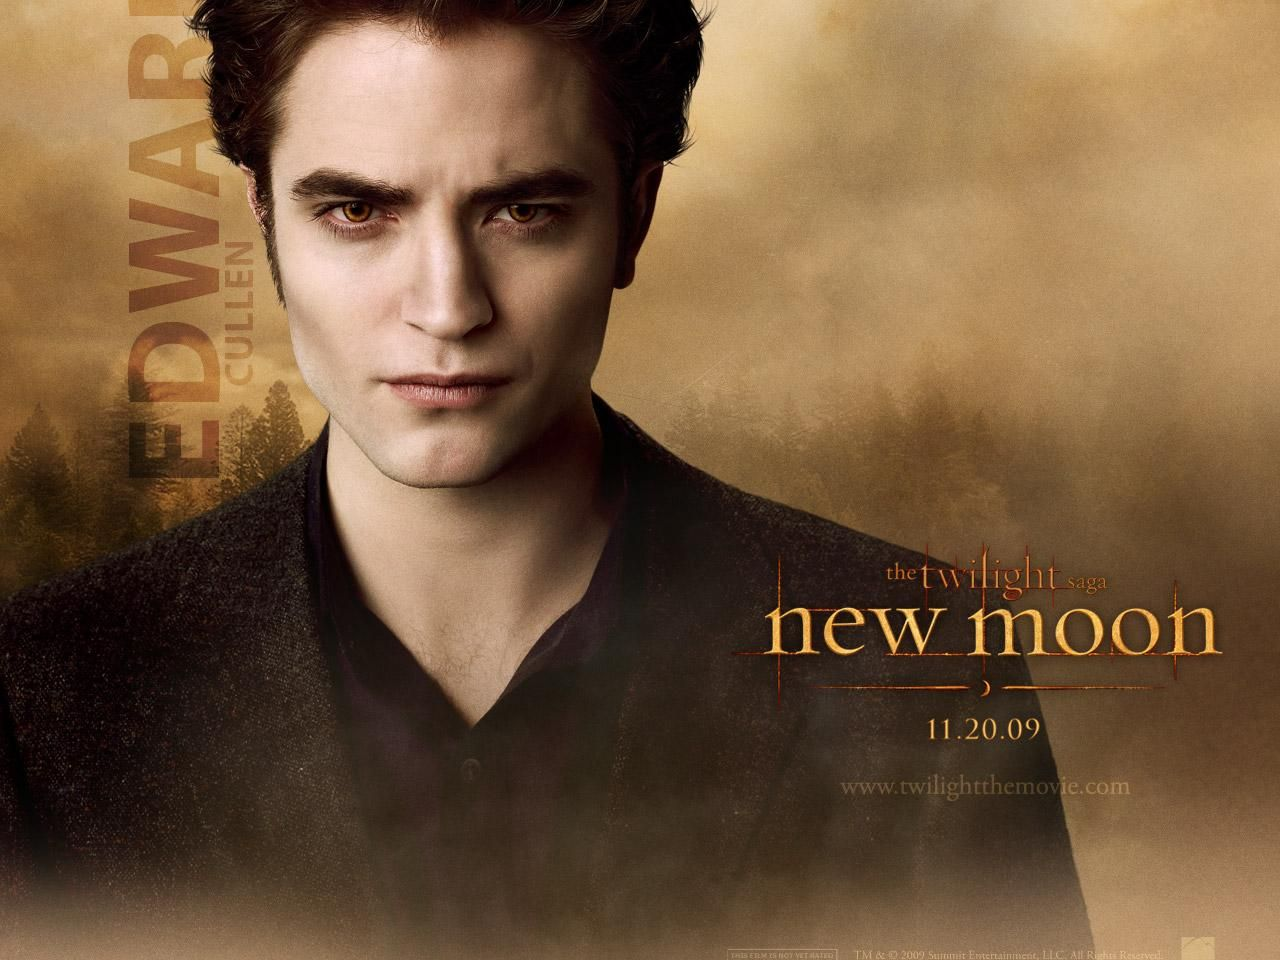 twilight saga new moon essay Compare and contrast essay on twilight book explains how the high school had scheduled bella for an article on front page school newspaper because she is a new.